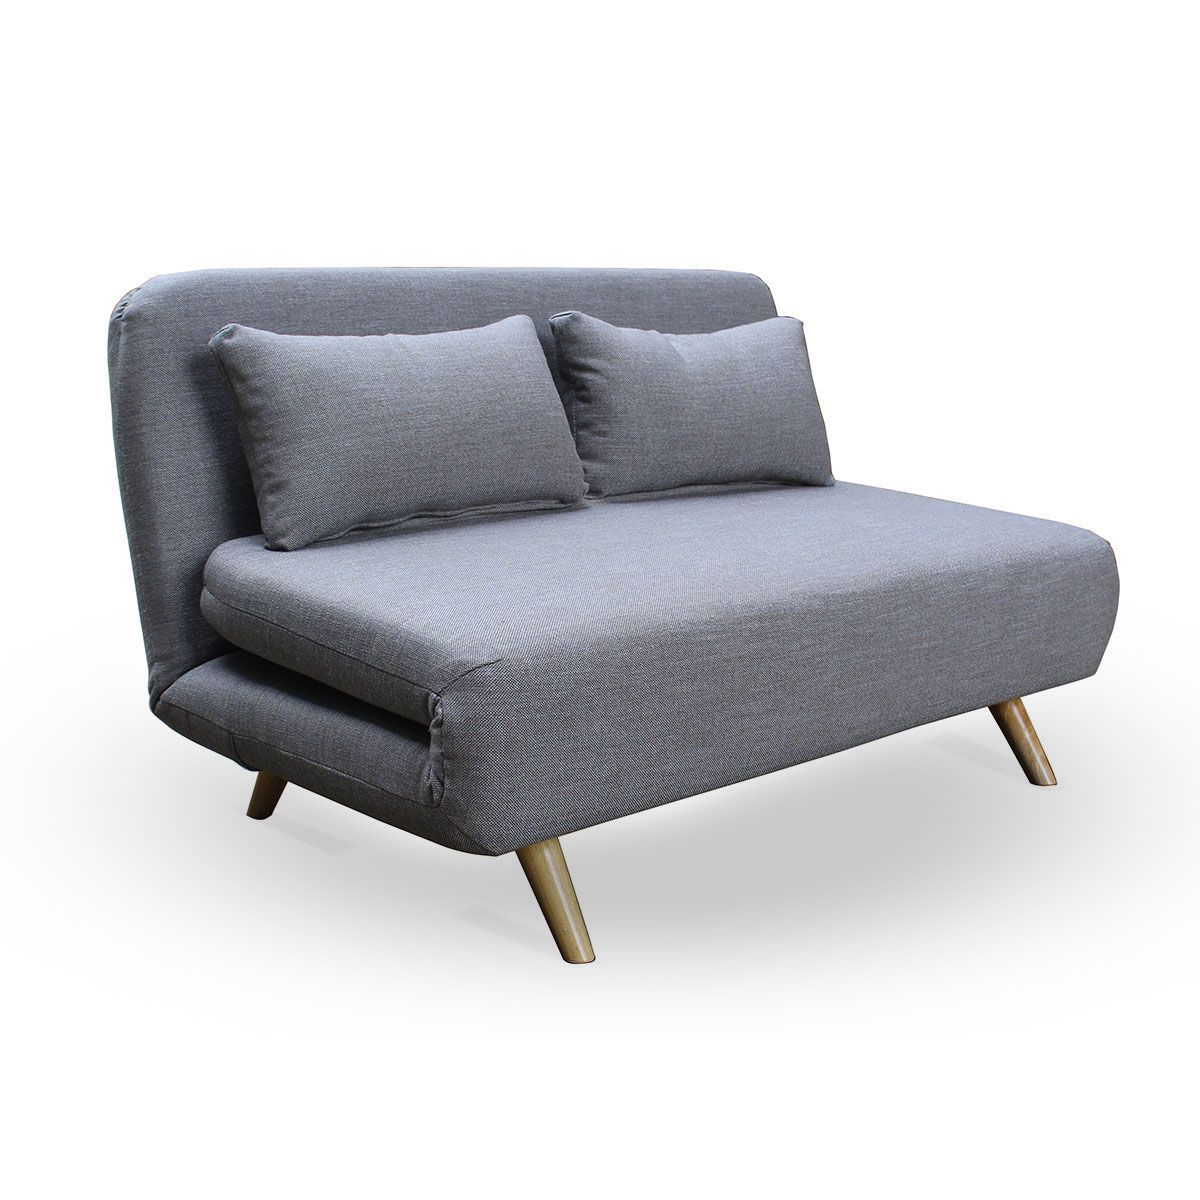 Canape Design Convertible Canapé Convertible 2 Places John Salas In 2019 Sofa Wood Sofa